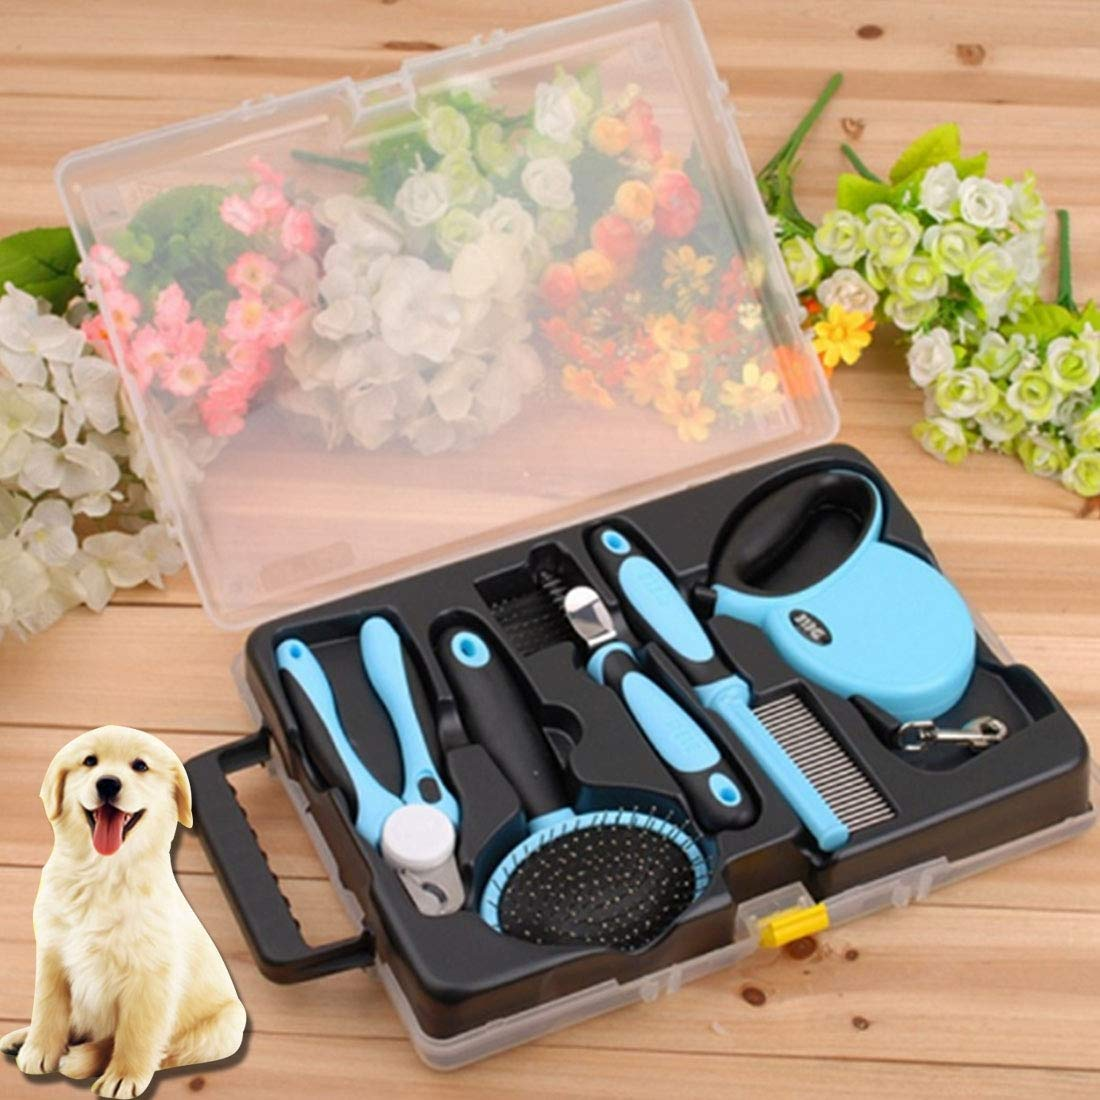 VAXT Steer Pet Fin Piece Set 3m Retractable Traction Rope + Combs + Detangling Comb + Gilling + Nail Clippers